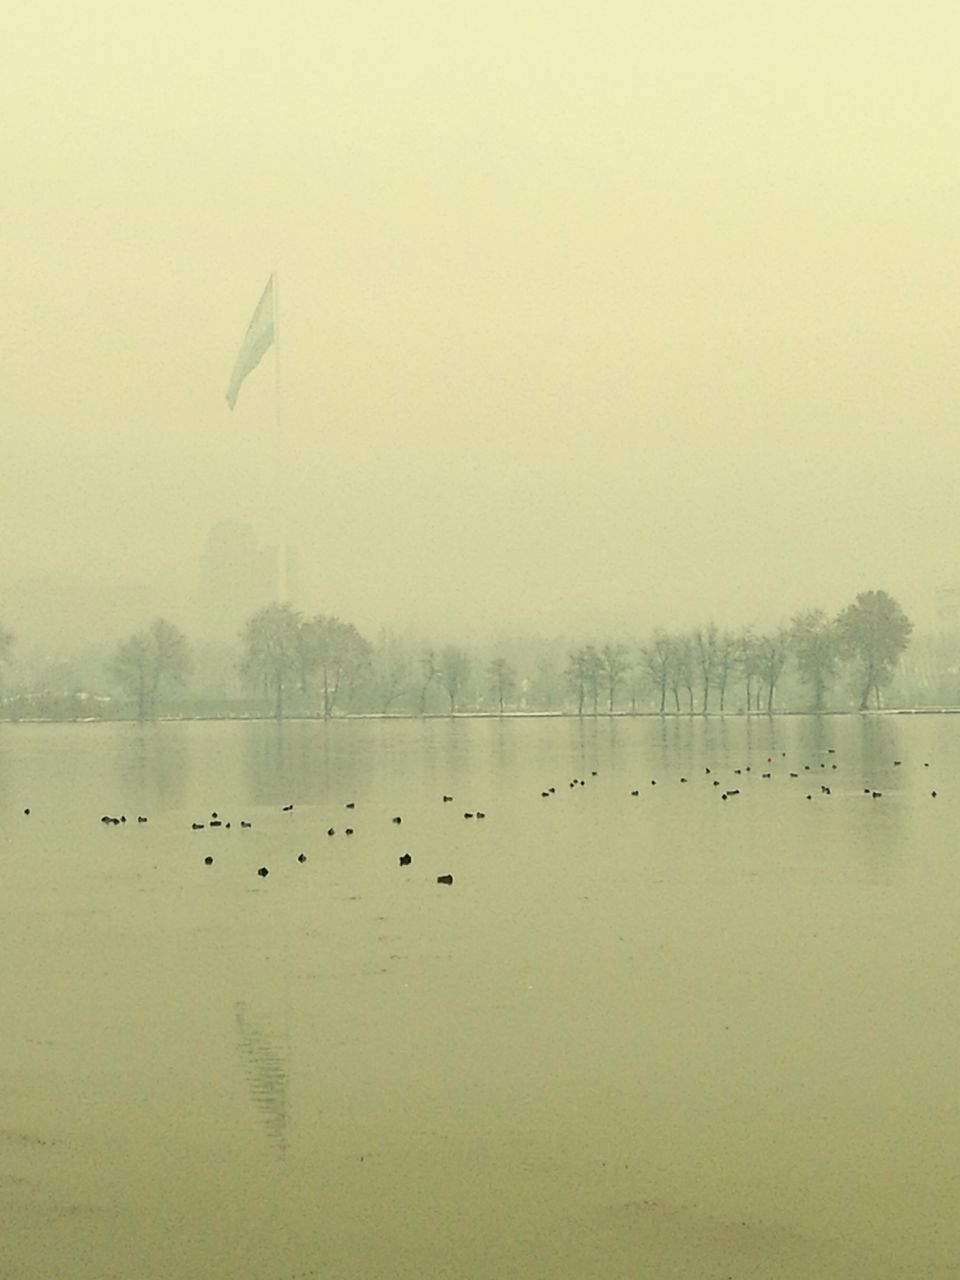 water, lake, nature, fog, duck, bird, reflection, animal themes, foggy, beauty in nature, outdoors, tranquility, animals in the wild, tranquil scene, floating on water, large group of animals, waterfront, no people, flock of birds, day, scenics, goose, cold temperature, sky, flying, swimming, tree, swan